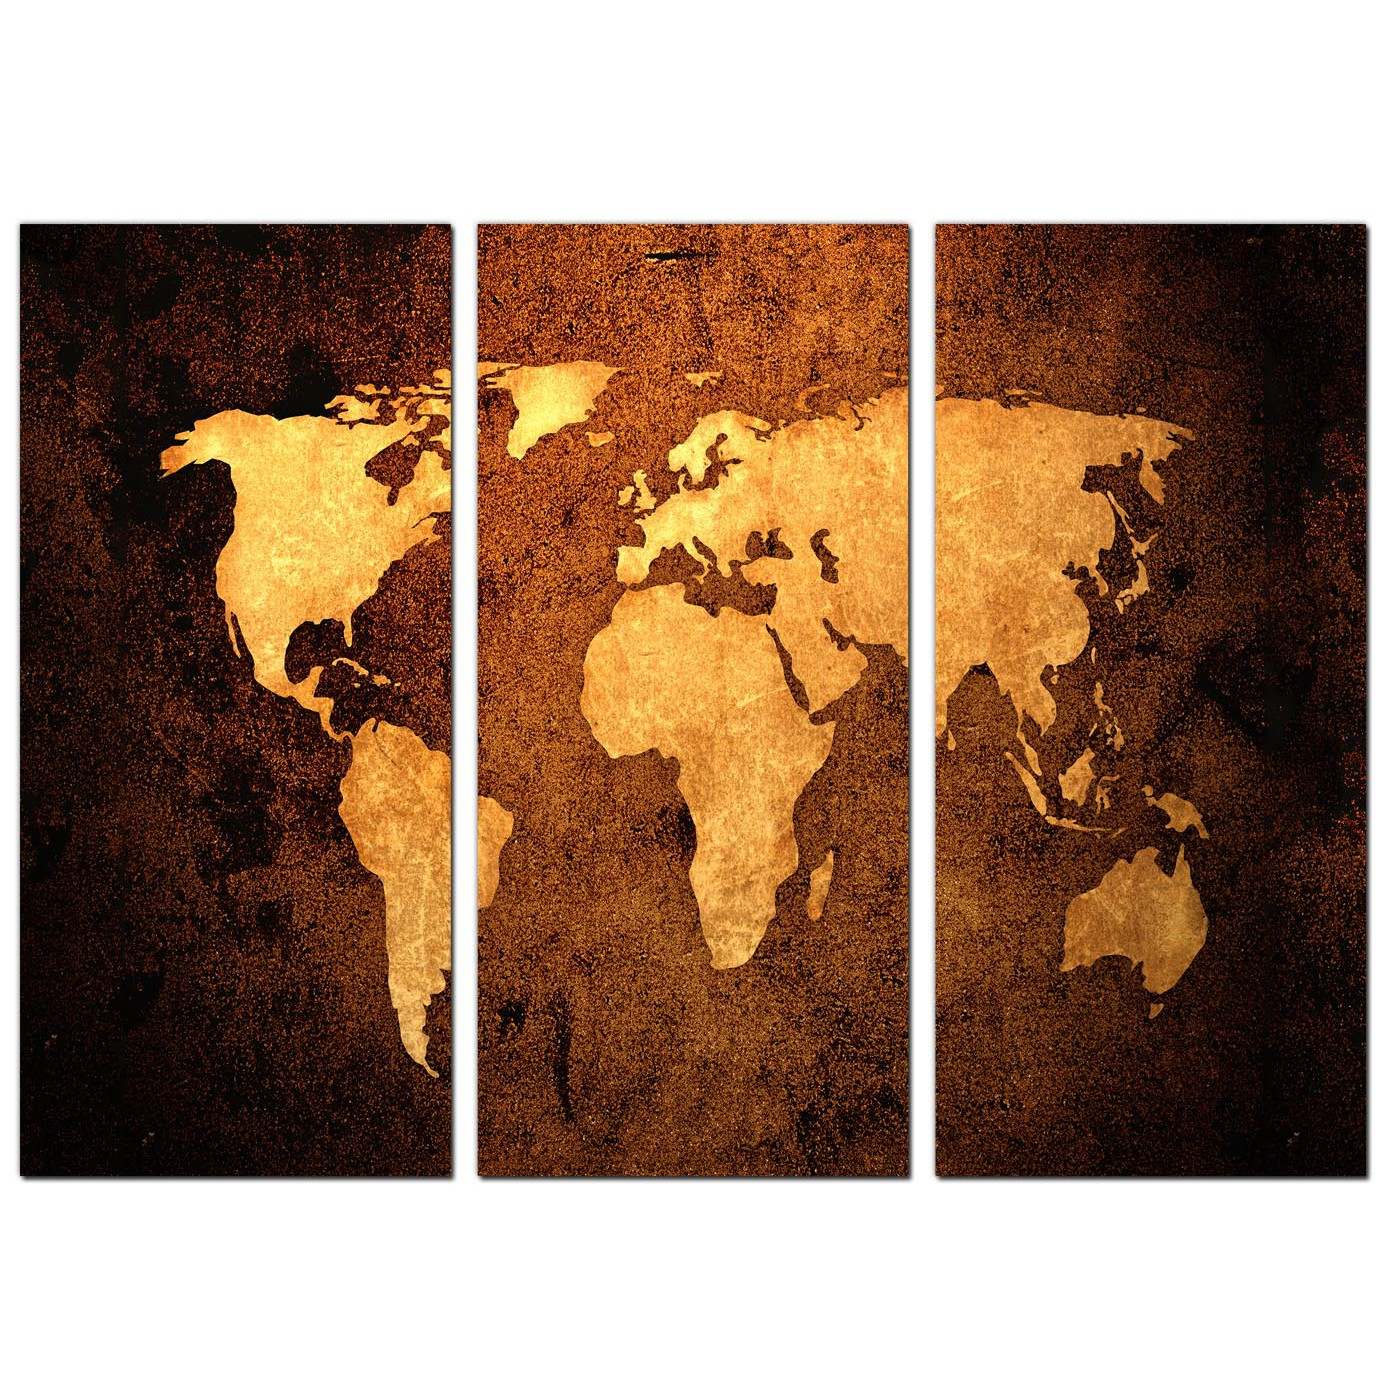 Vintage world map canvas wall art set of 3 for your bedroom display gallery item 2 3 part sepia canvas prints uk study 3188 display gallery item 3 gumiabroncs Images